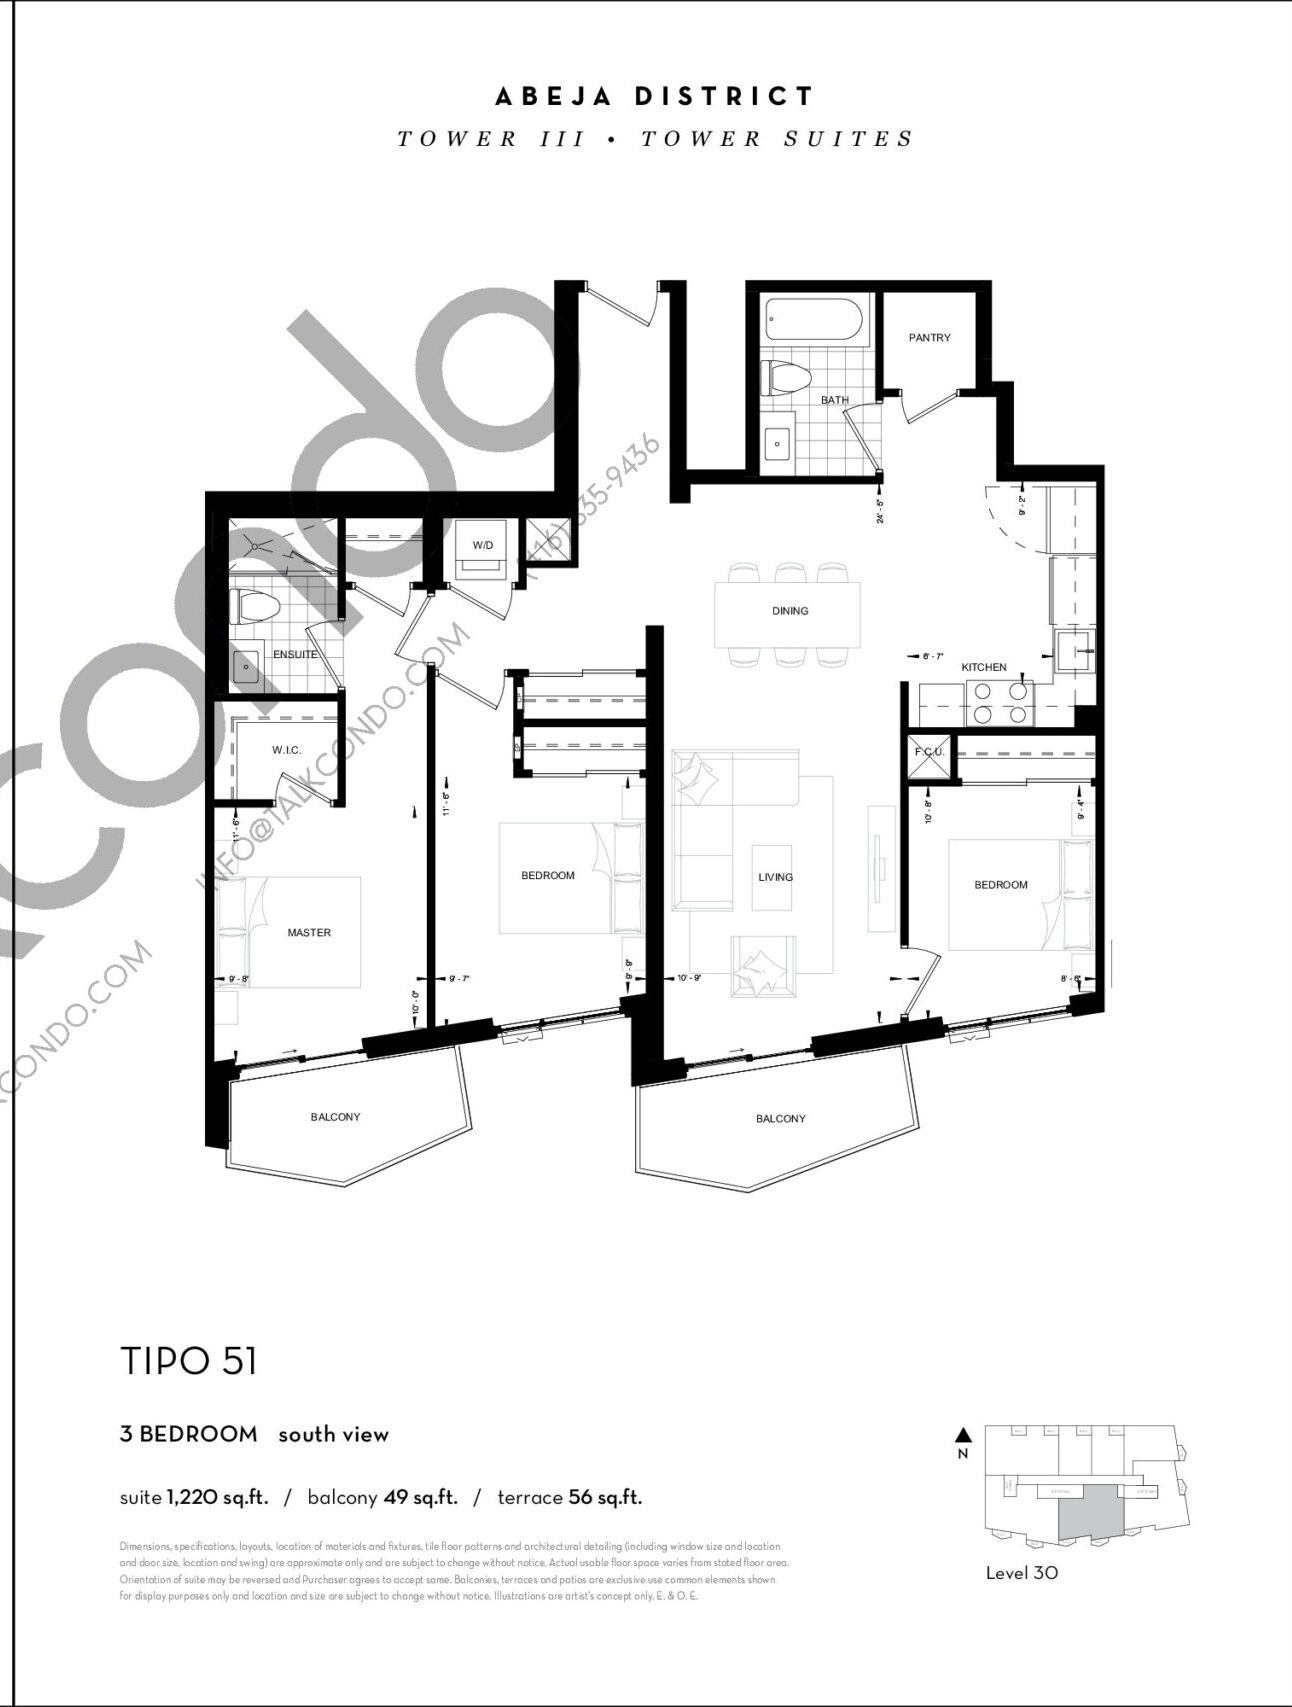 TIPO 51 Floor Plan at Abeja District Condos Tower 3 - 1220 sq.ft